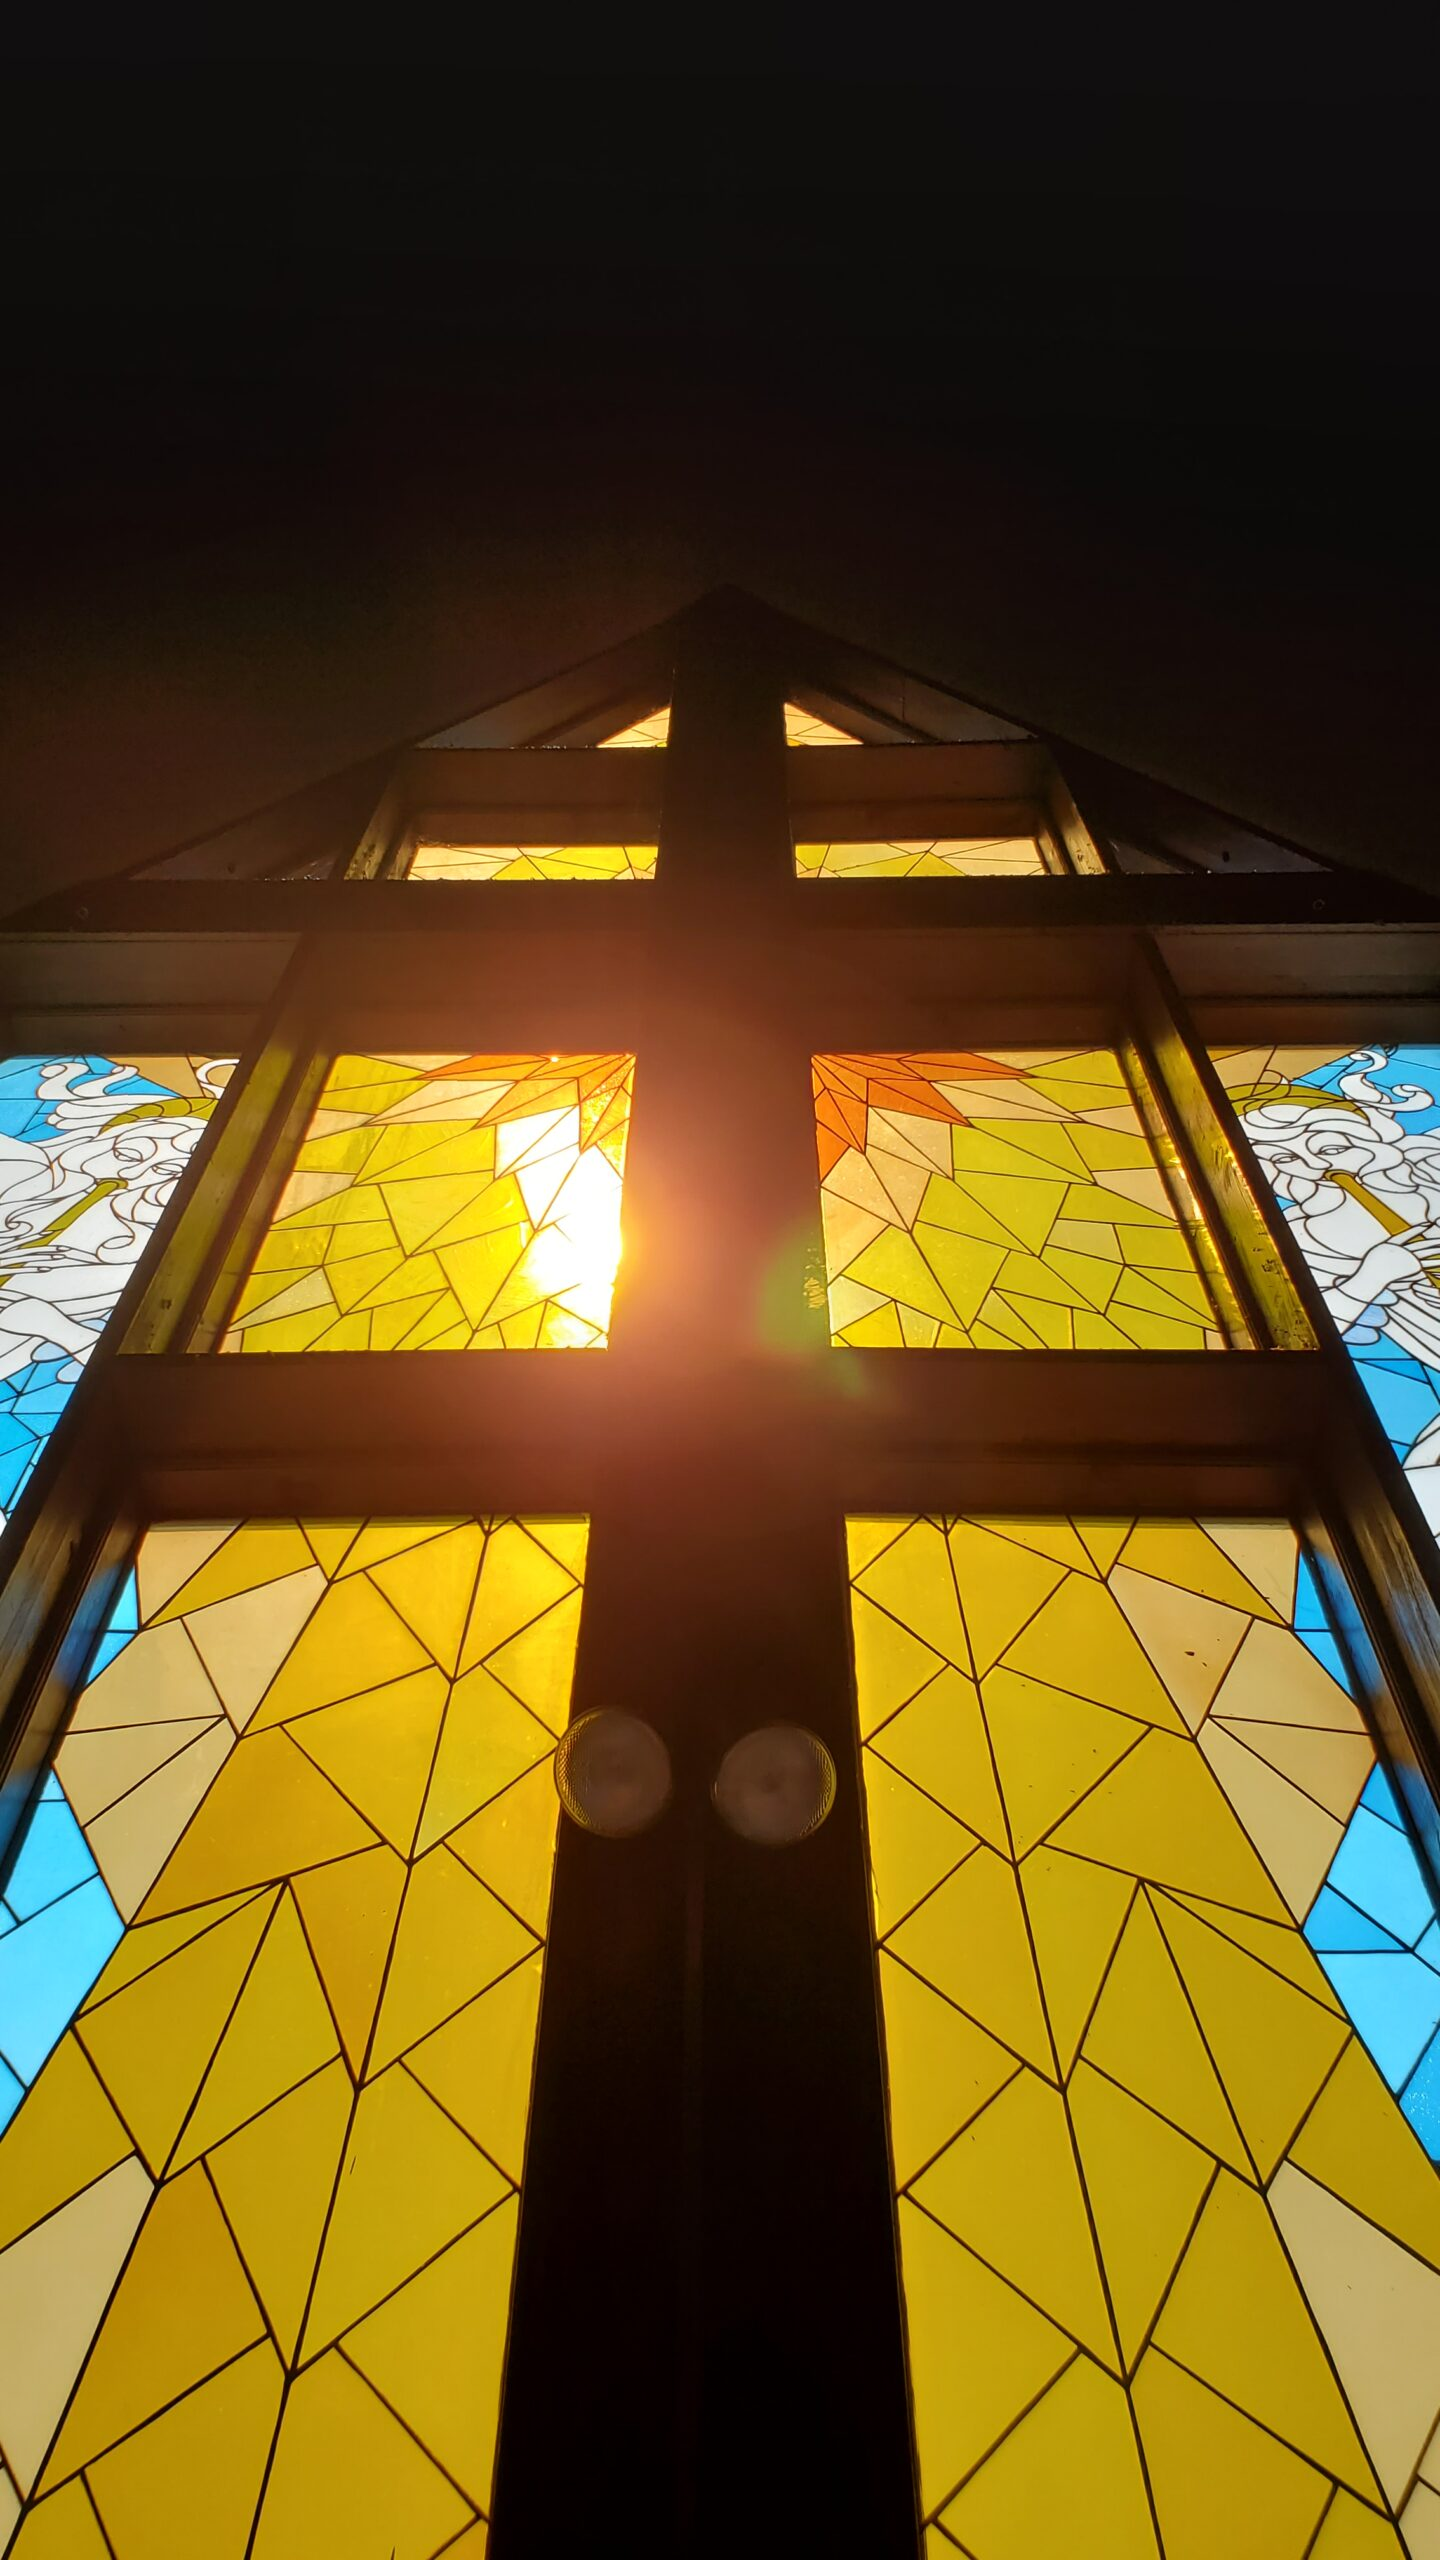 stained glass window with light streaming through